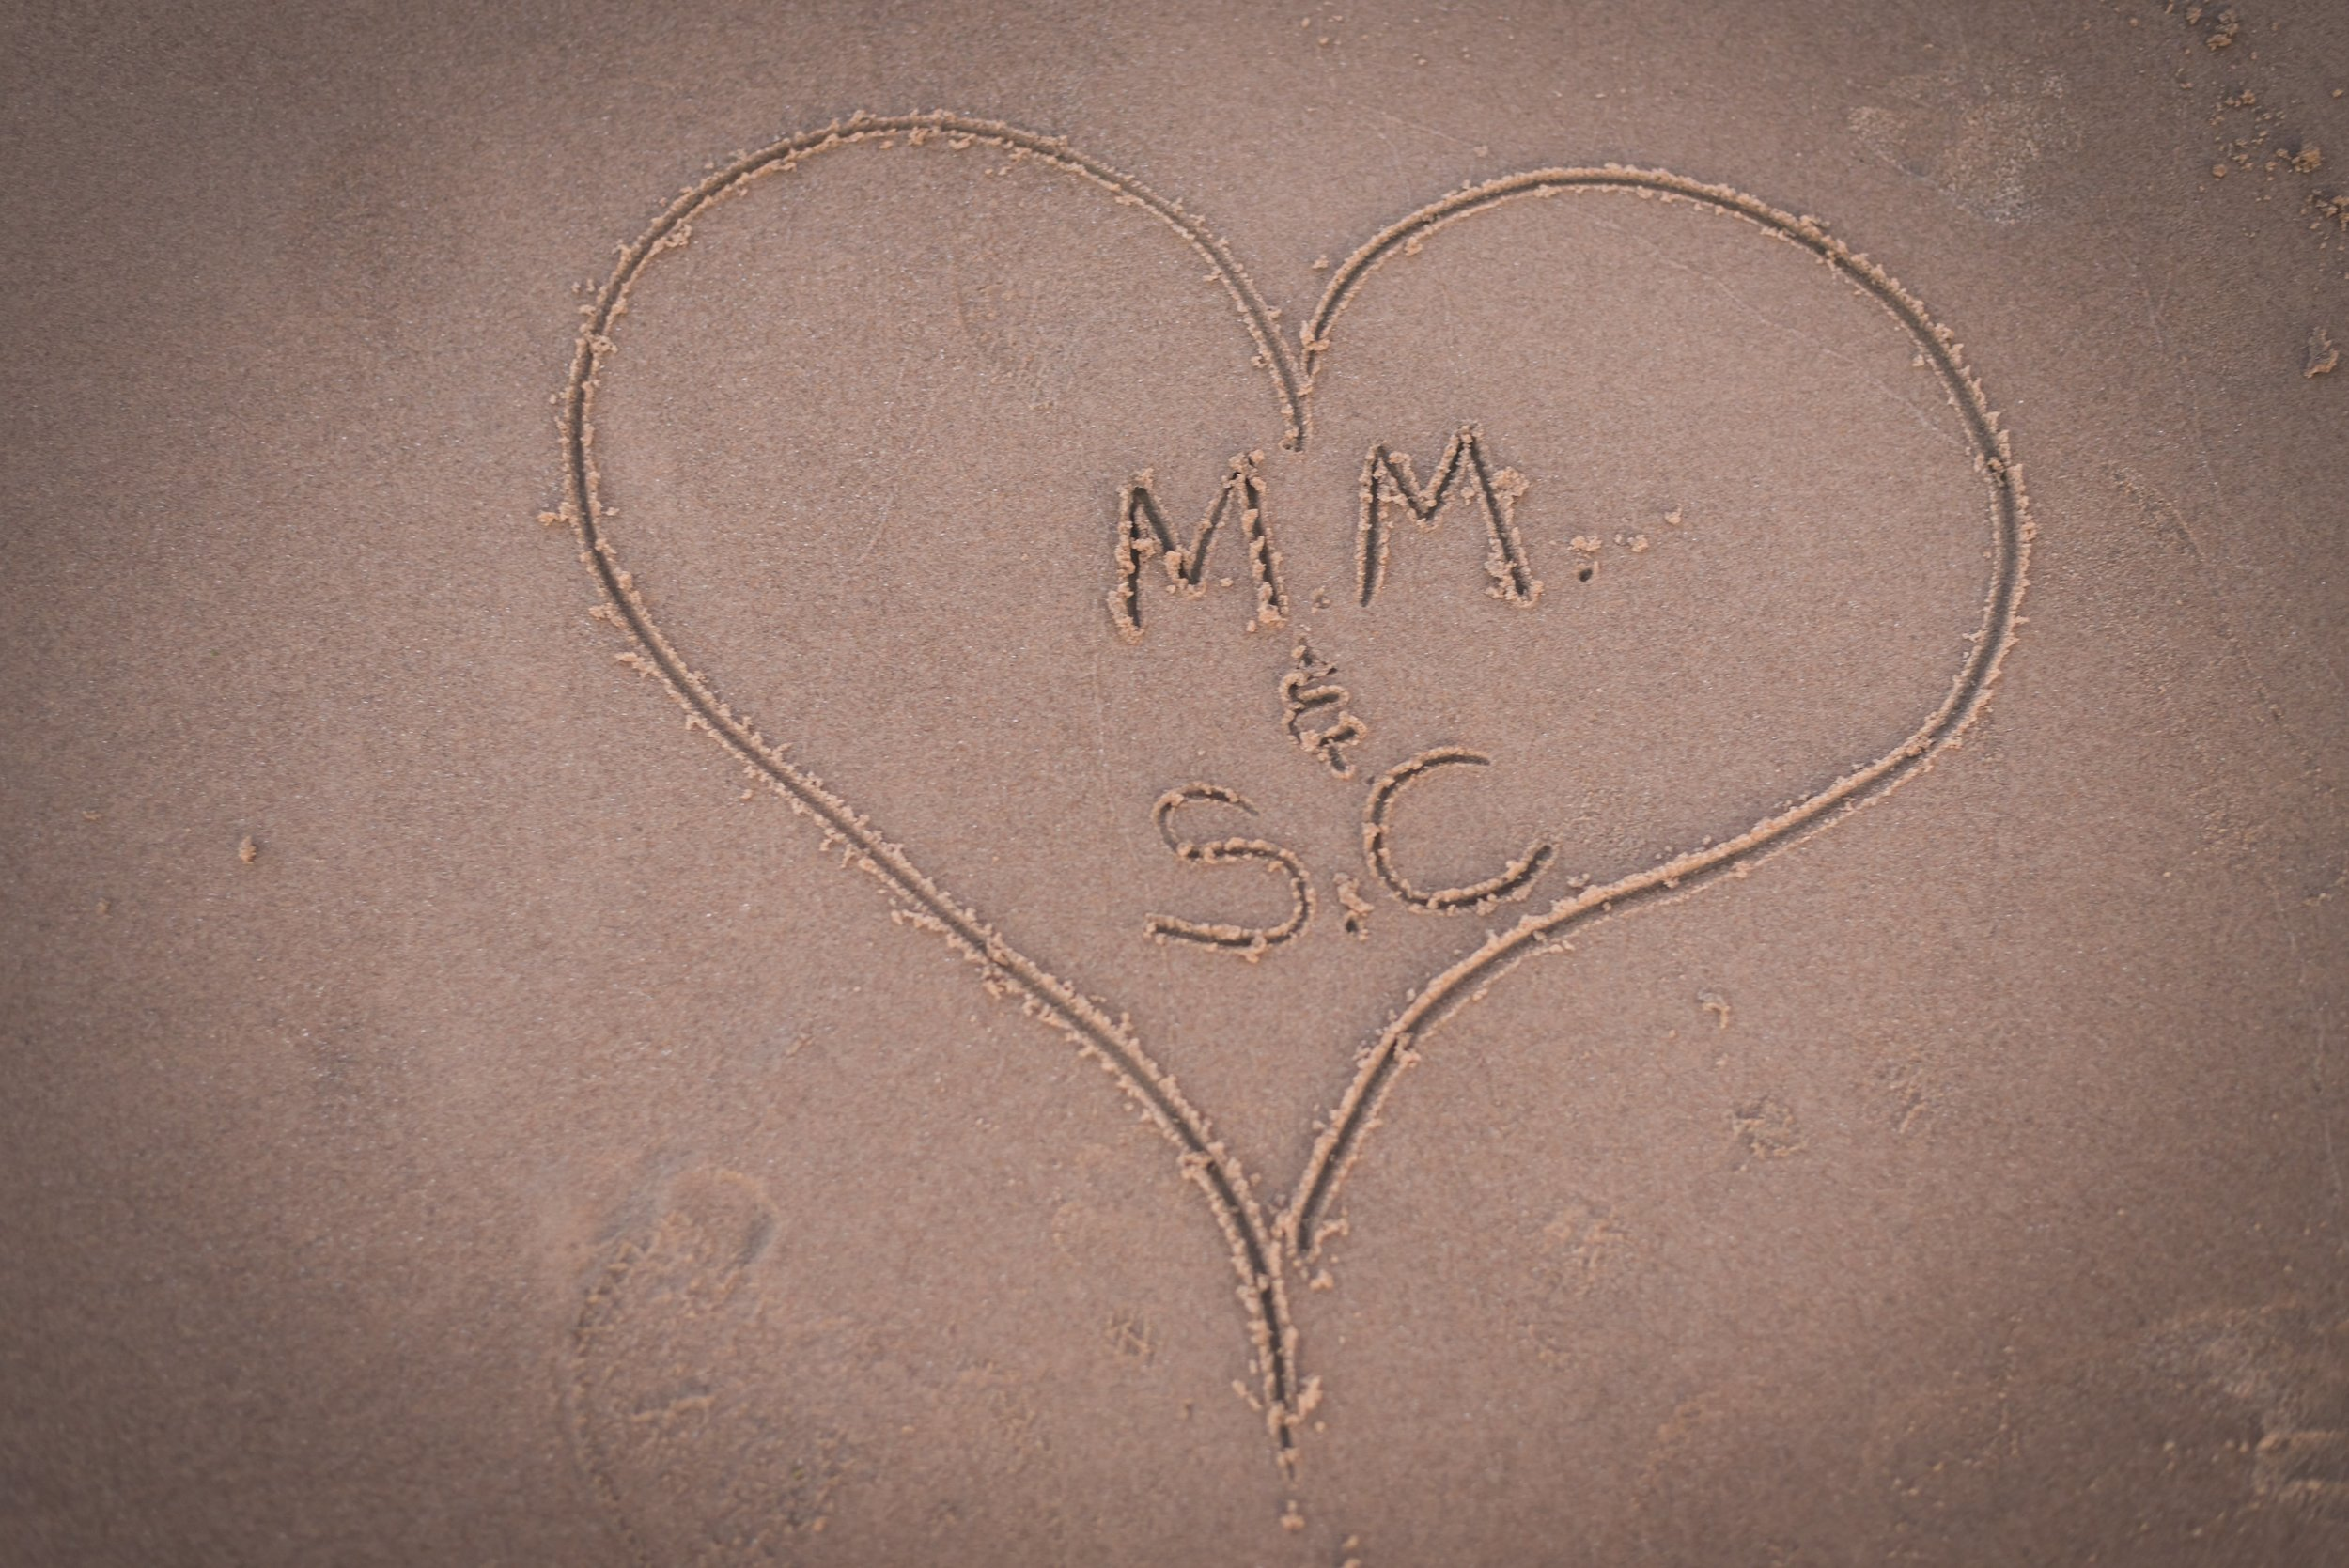 A couples initials etched in the sand surrounded by a heart.